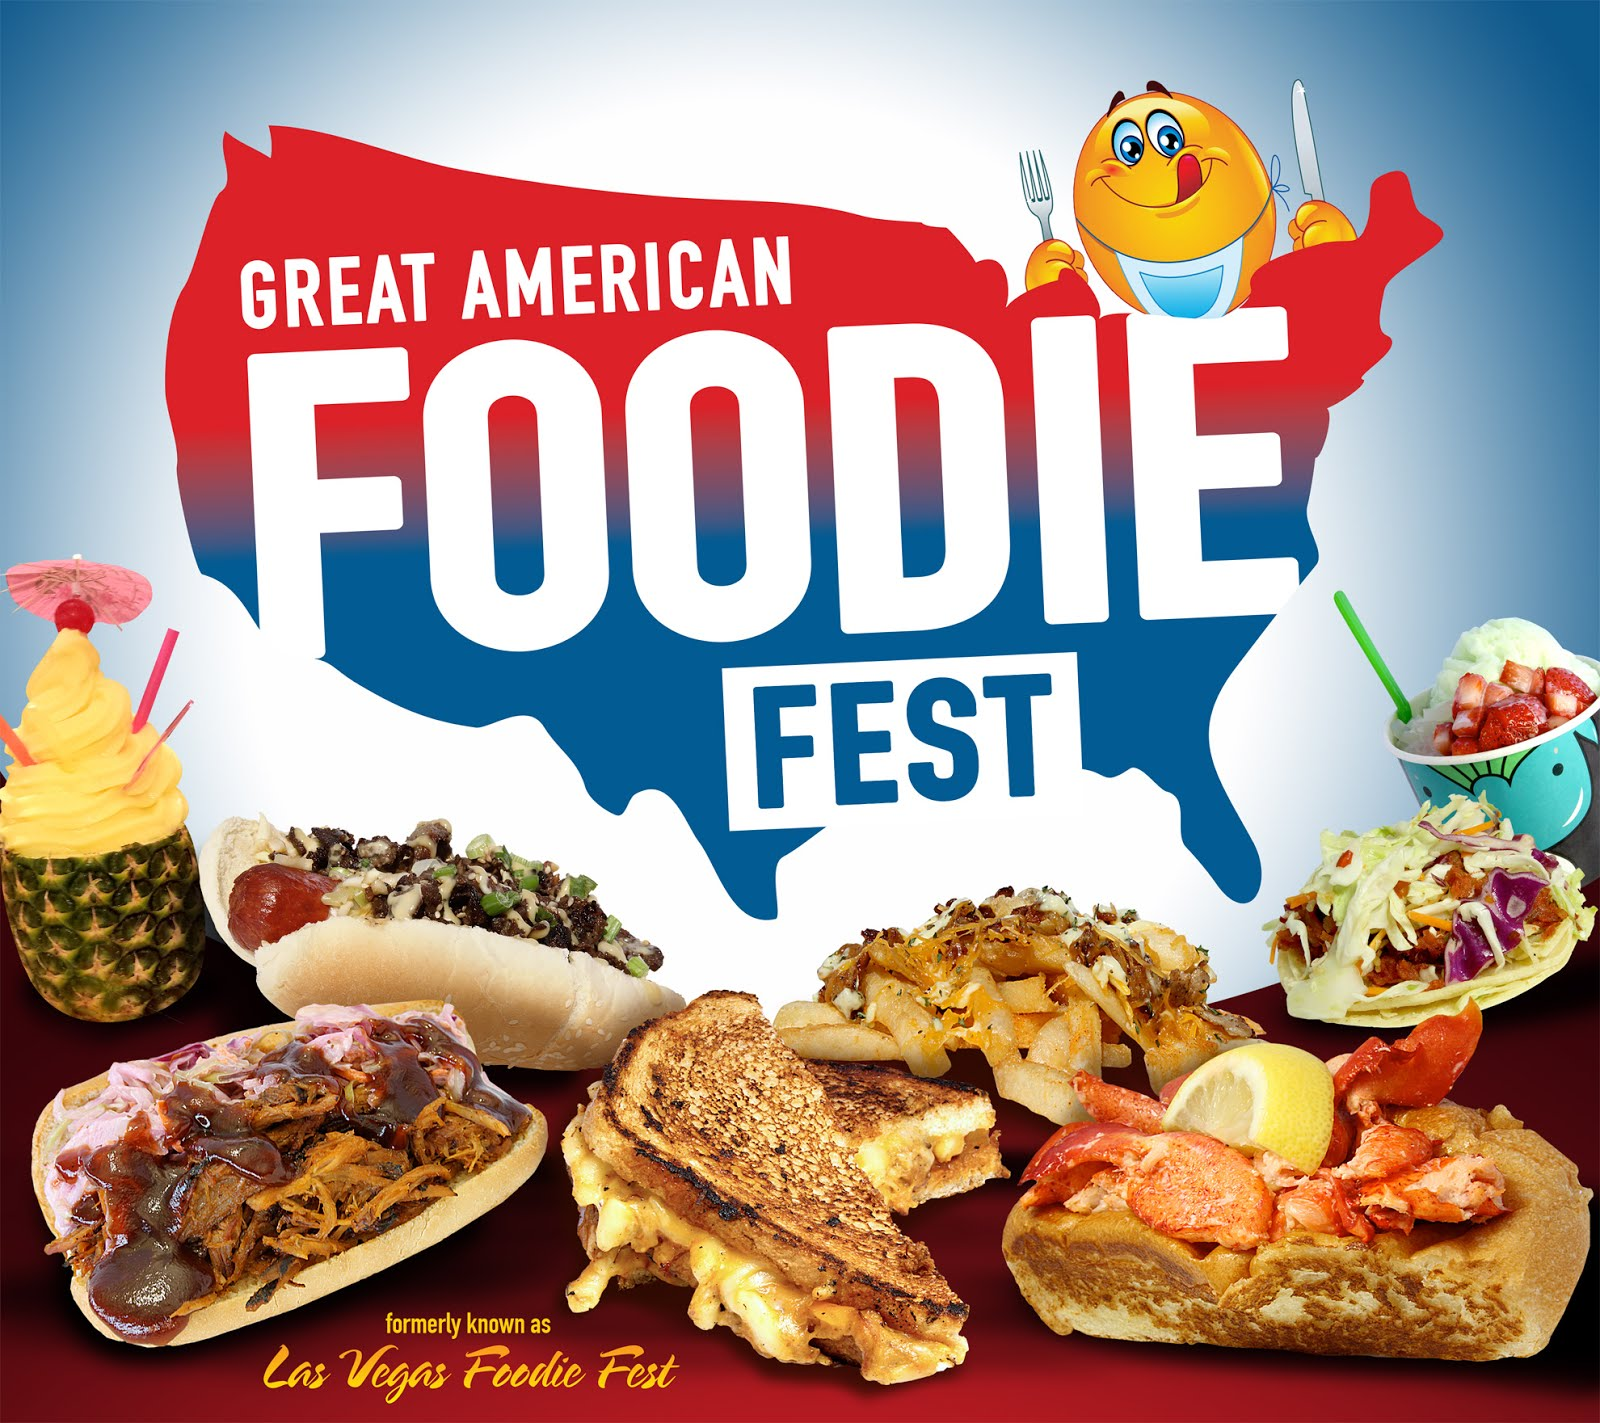 Win 2 Tickets to the Great American Foodie Fest - July 8-10